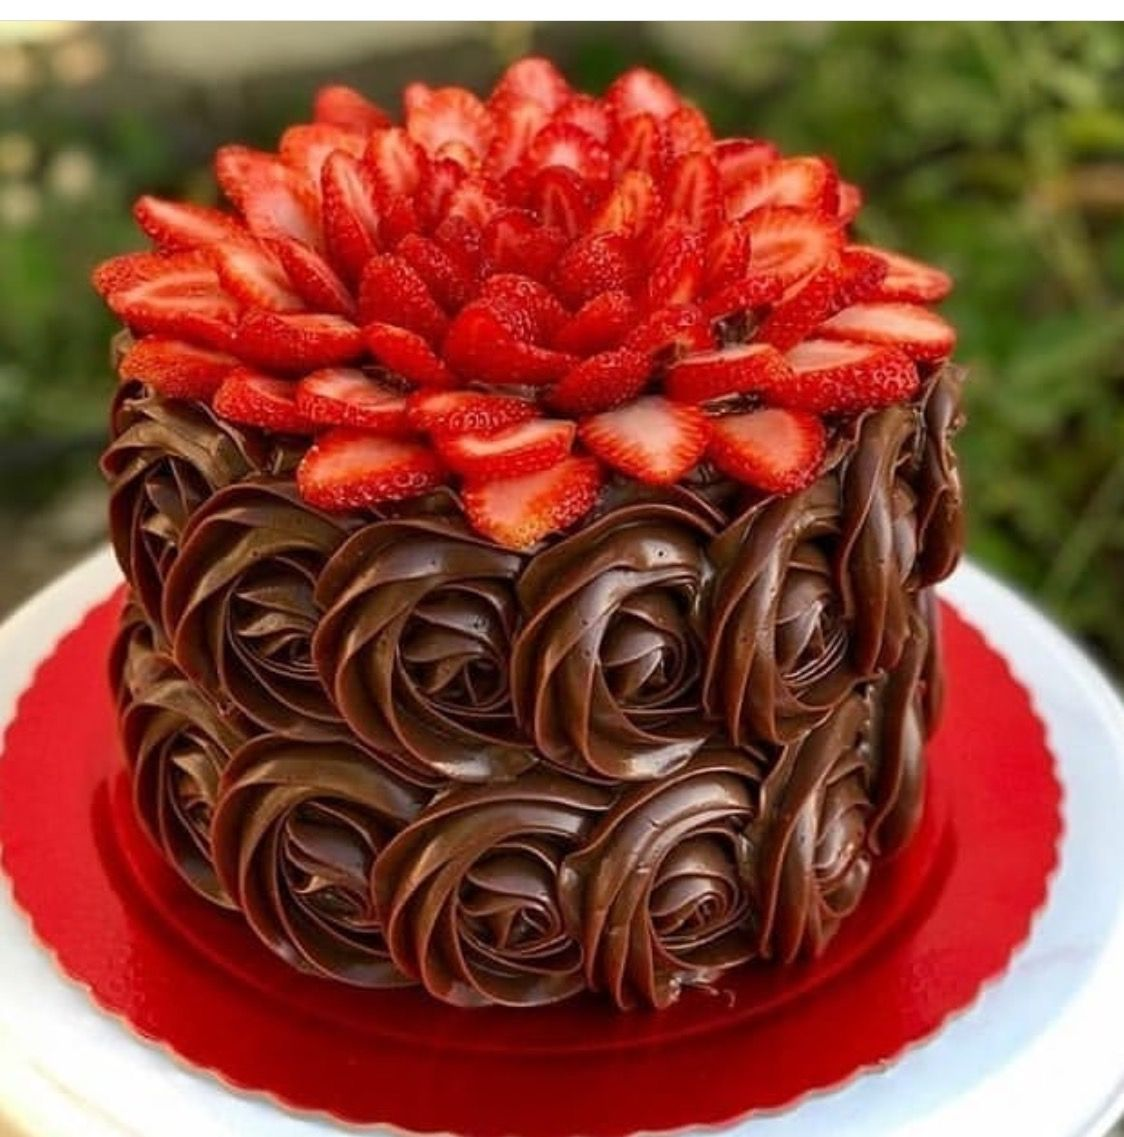 Flower Cake With Images Delicious Strawberry Cake Strawberry